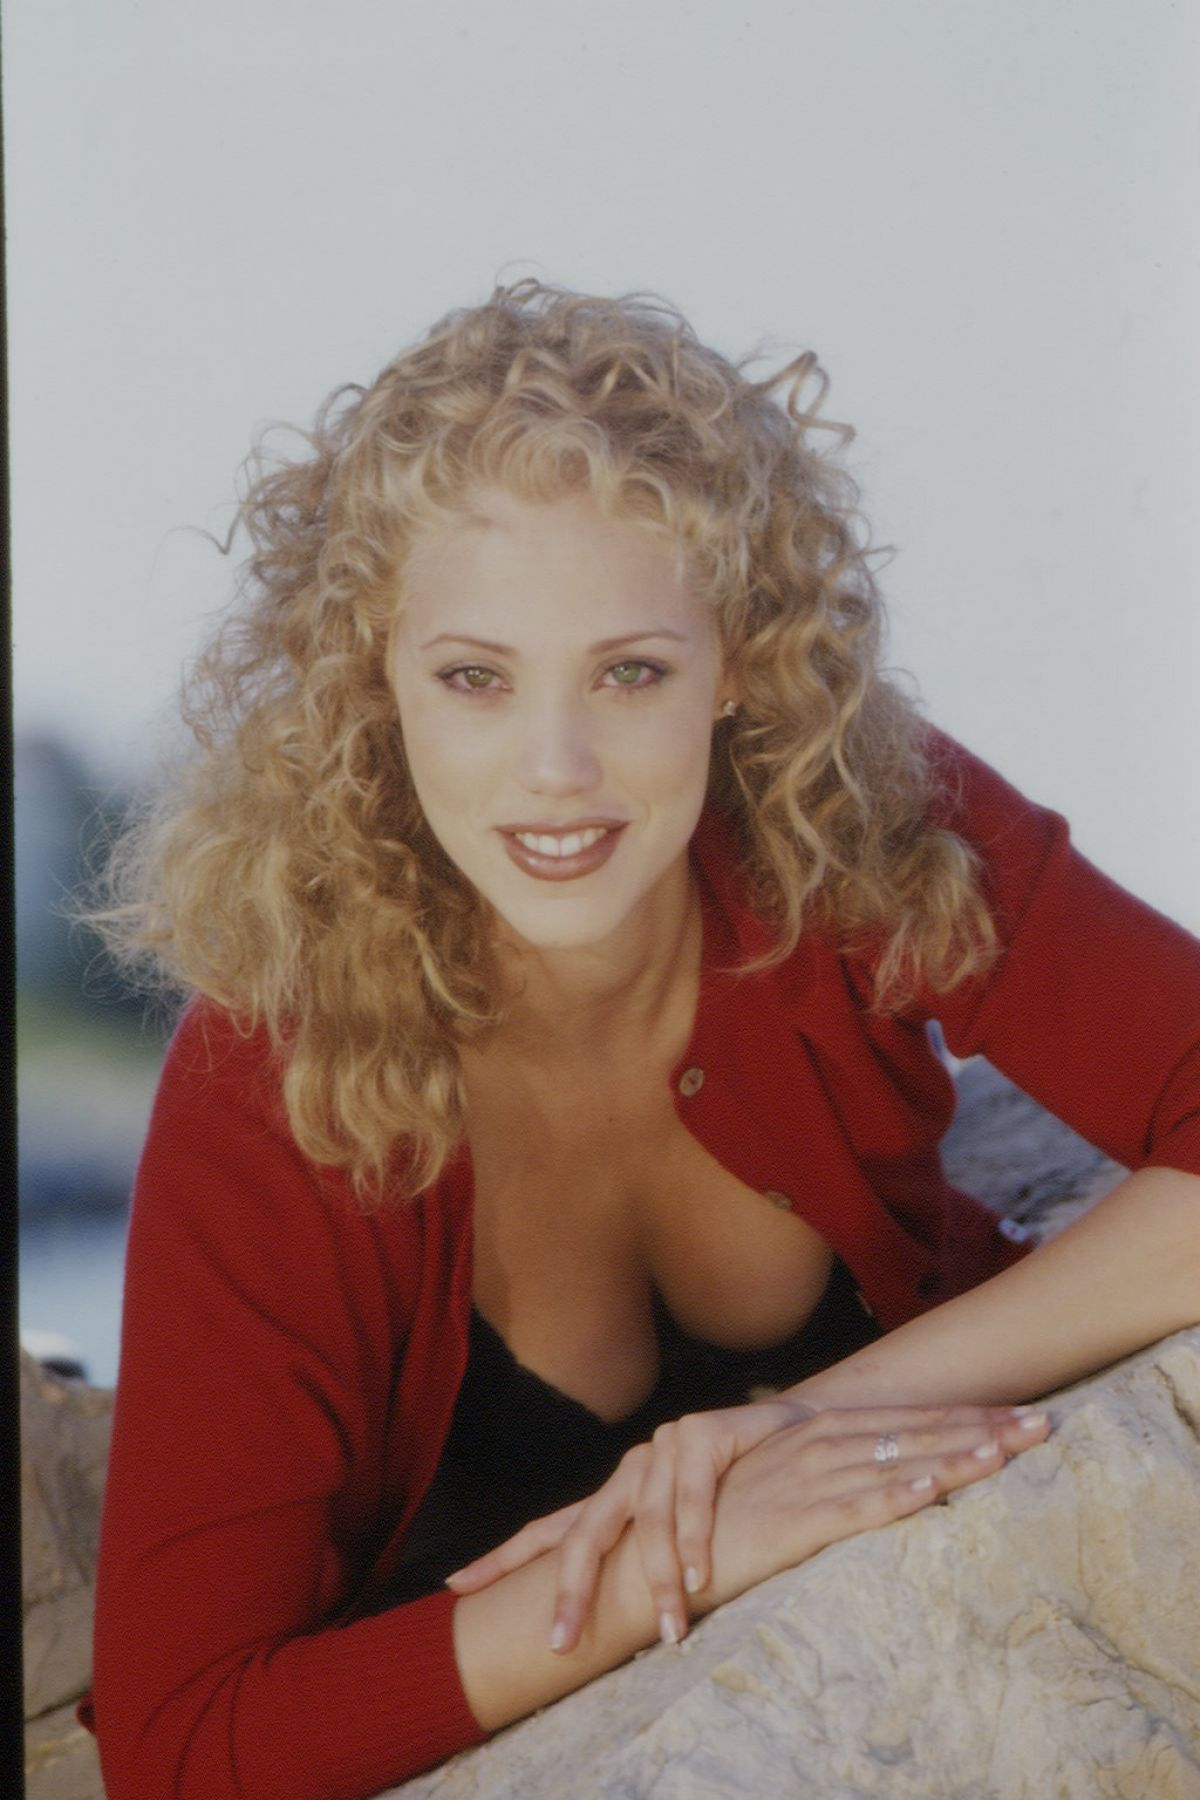 Elizabeth berkley at eric robert photoshoot 1995 celebzz elizabeth berkley at eric robert photoshoot 1995 voltagebd Image collections